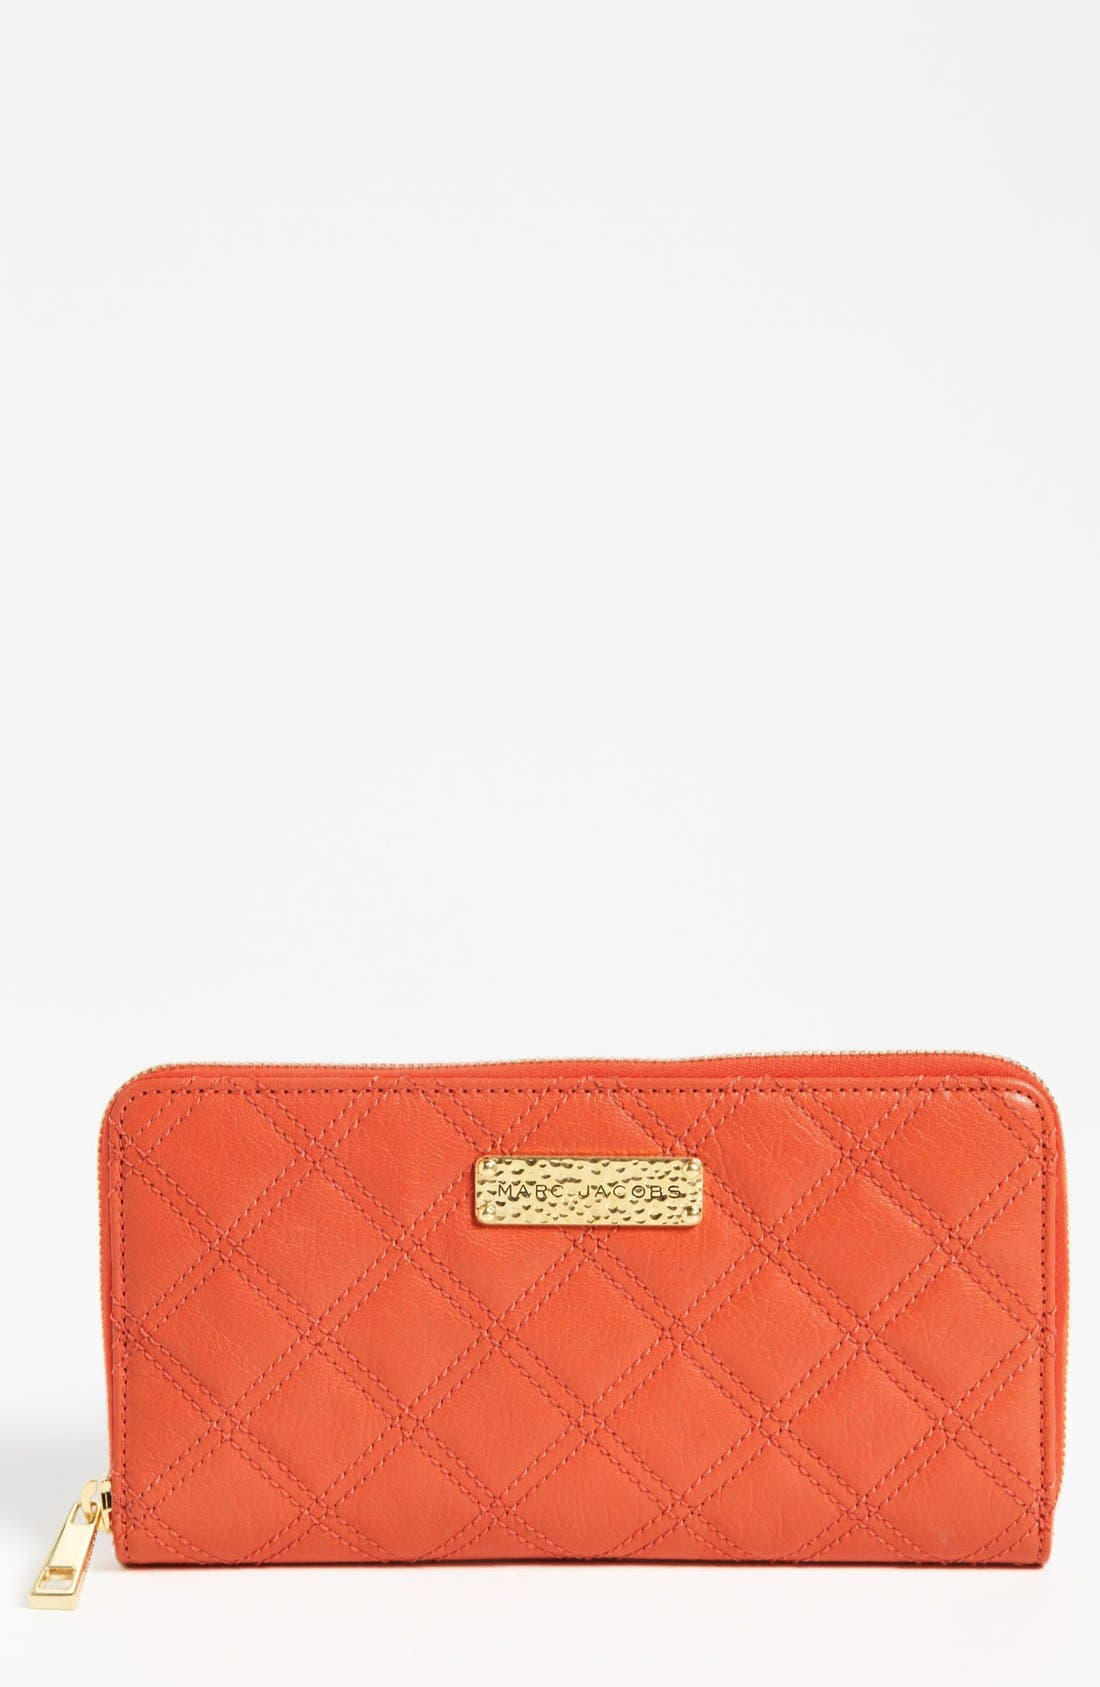 Main Image - MARC JACOBS 'Baroque - Sister' Leather Wallet